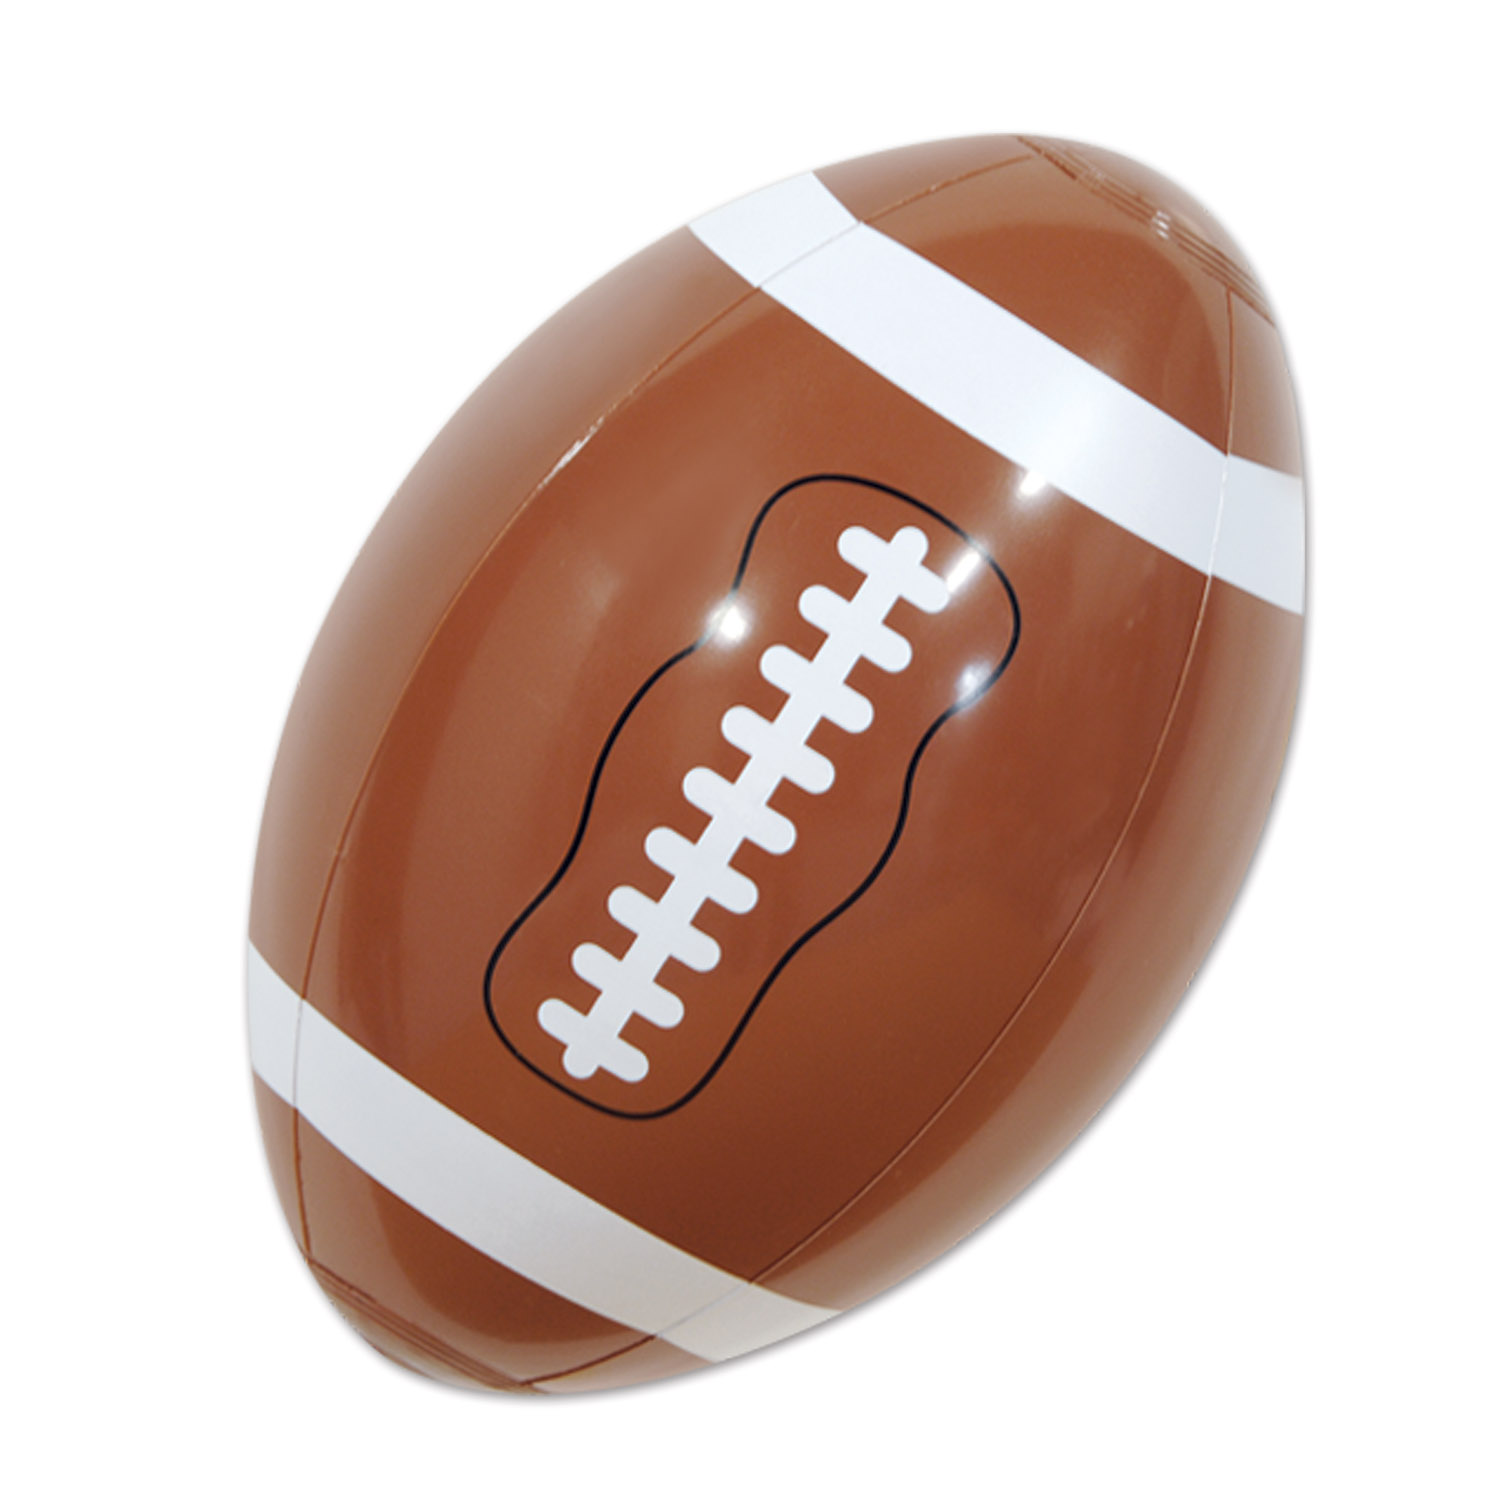 Inflatable Football (Pack of 12) Inflatable Football, Game Day decorations, Inexpensive party supplies, Cheap party goods, Football party supplies